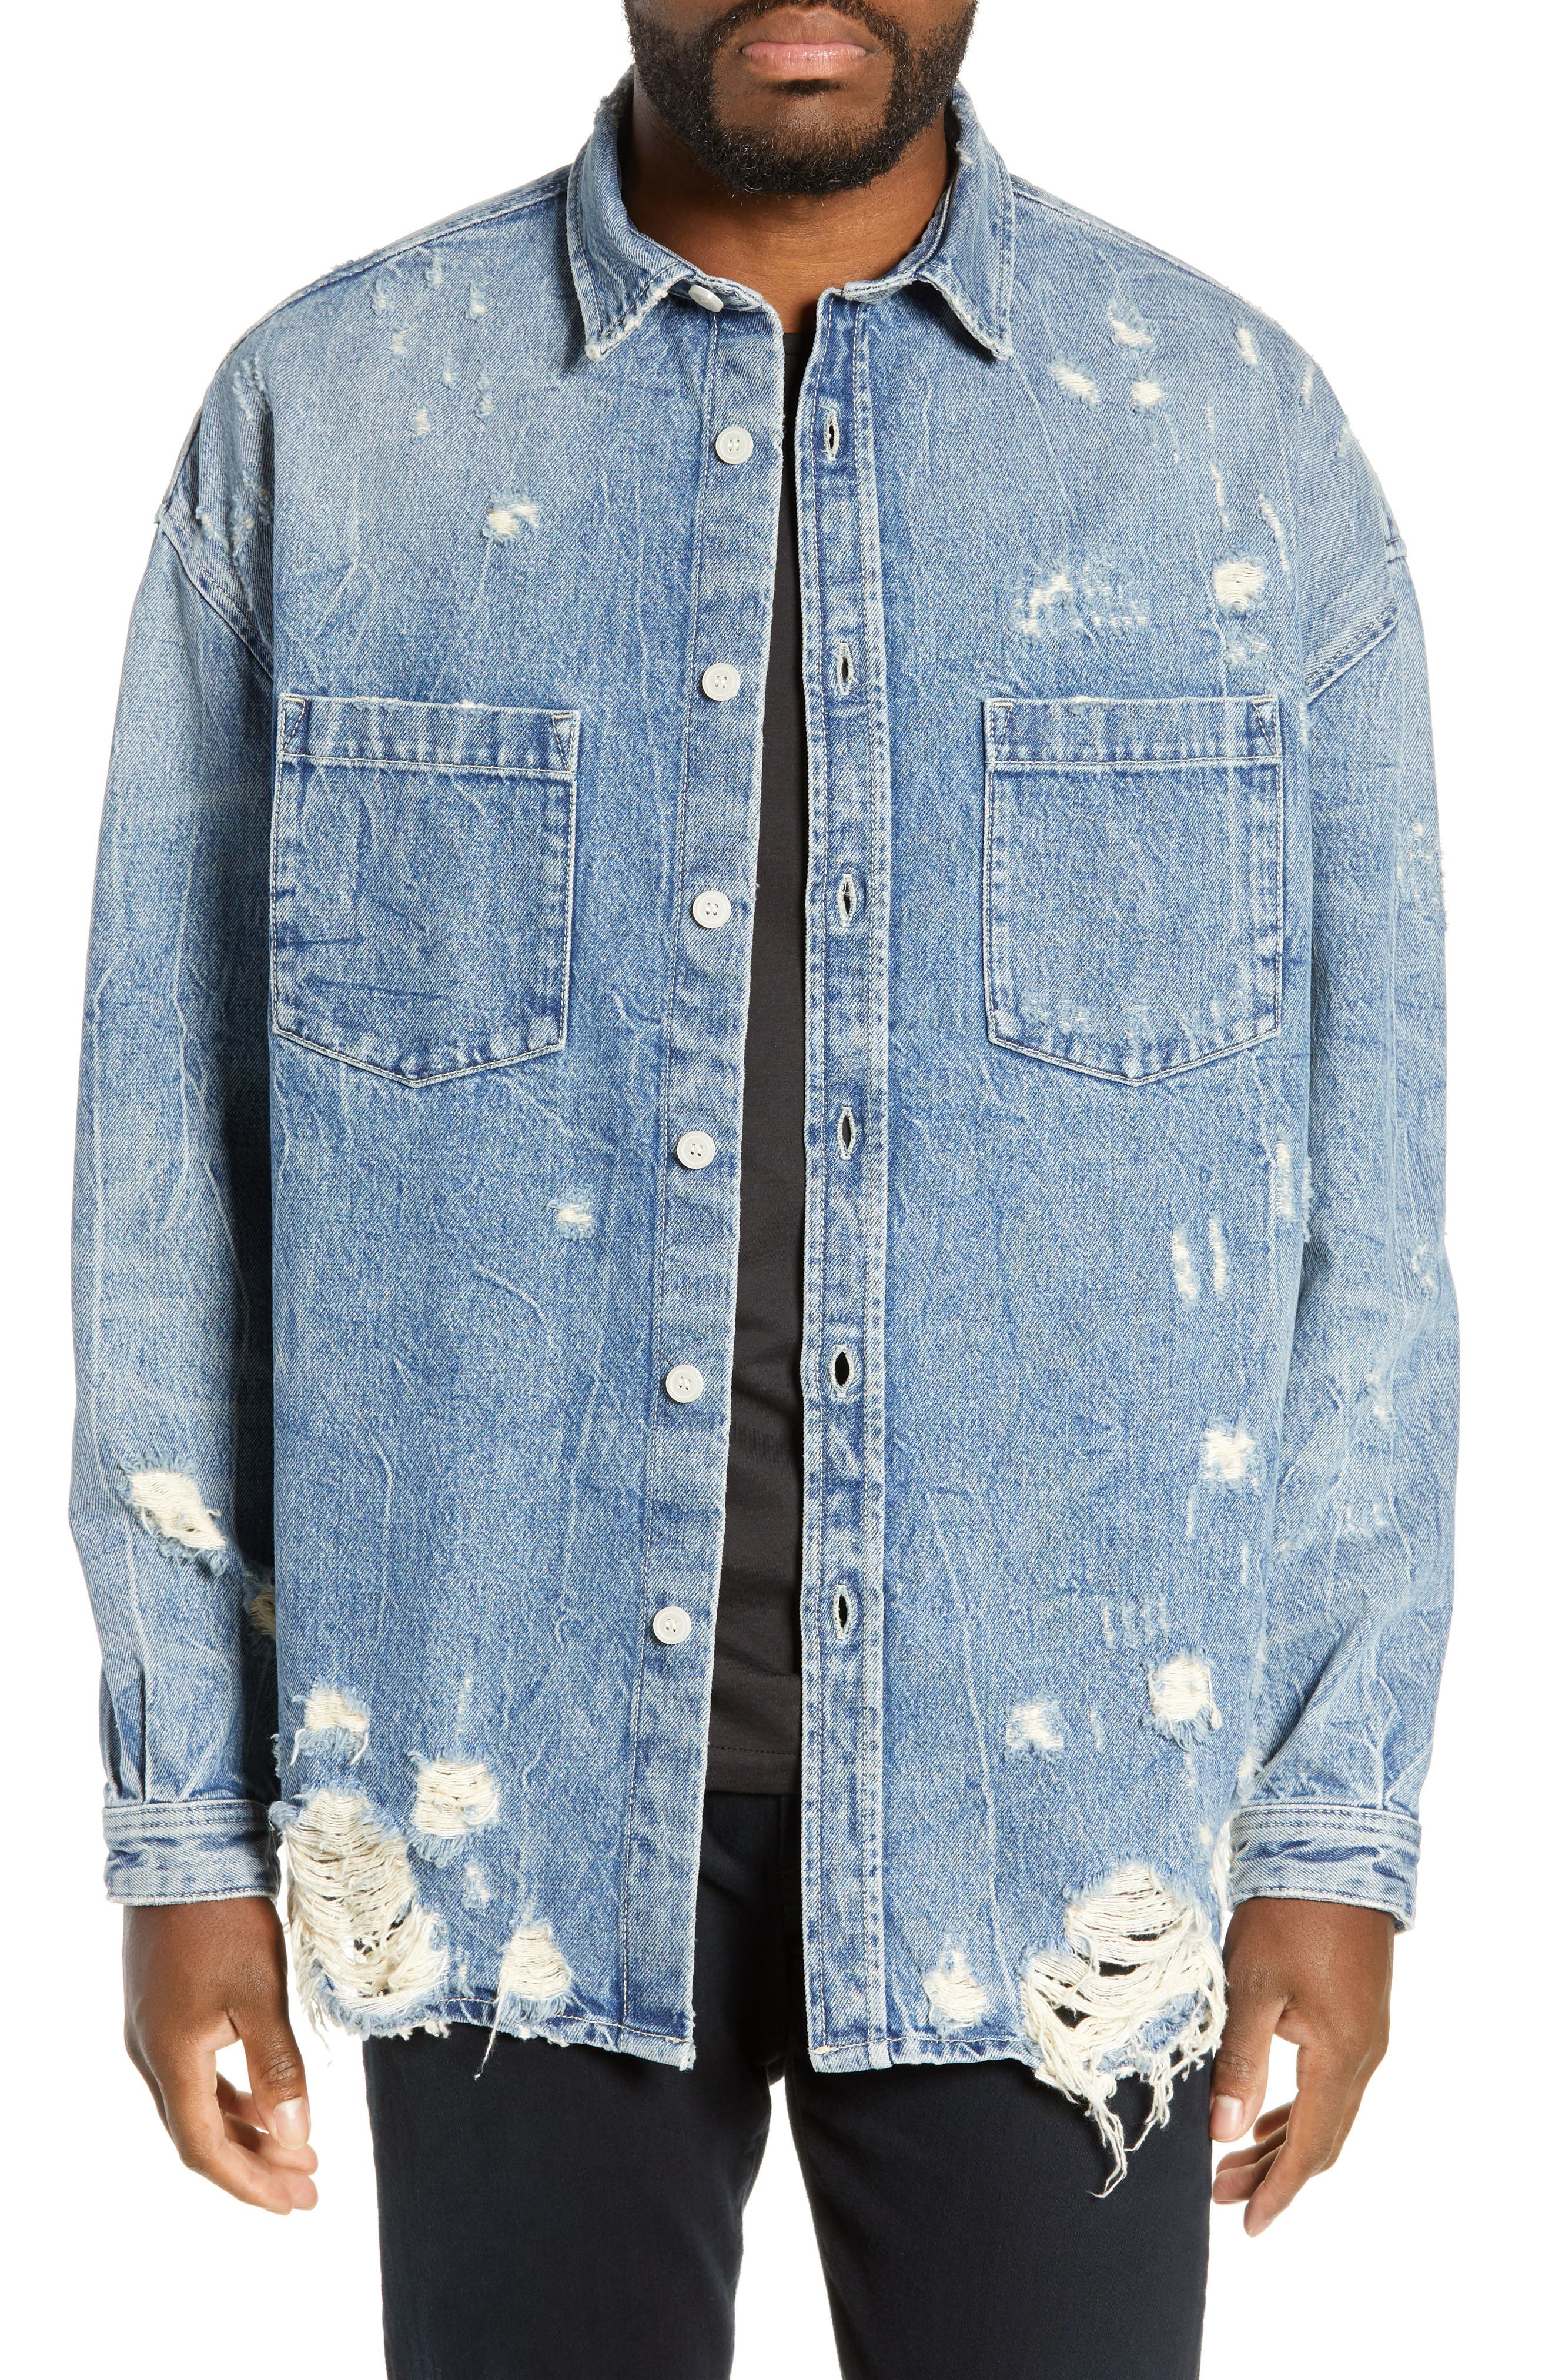 THE KOOPLES, Distressed Denim Overshirt, Main thumbnail 1, color, BLUE DENIM